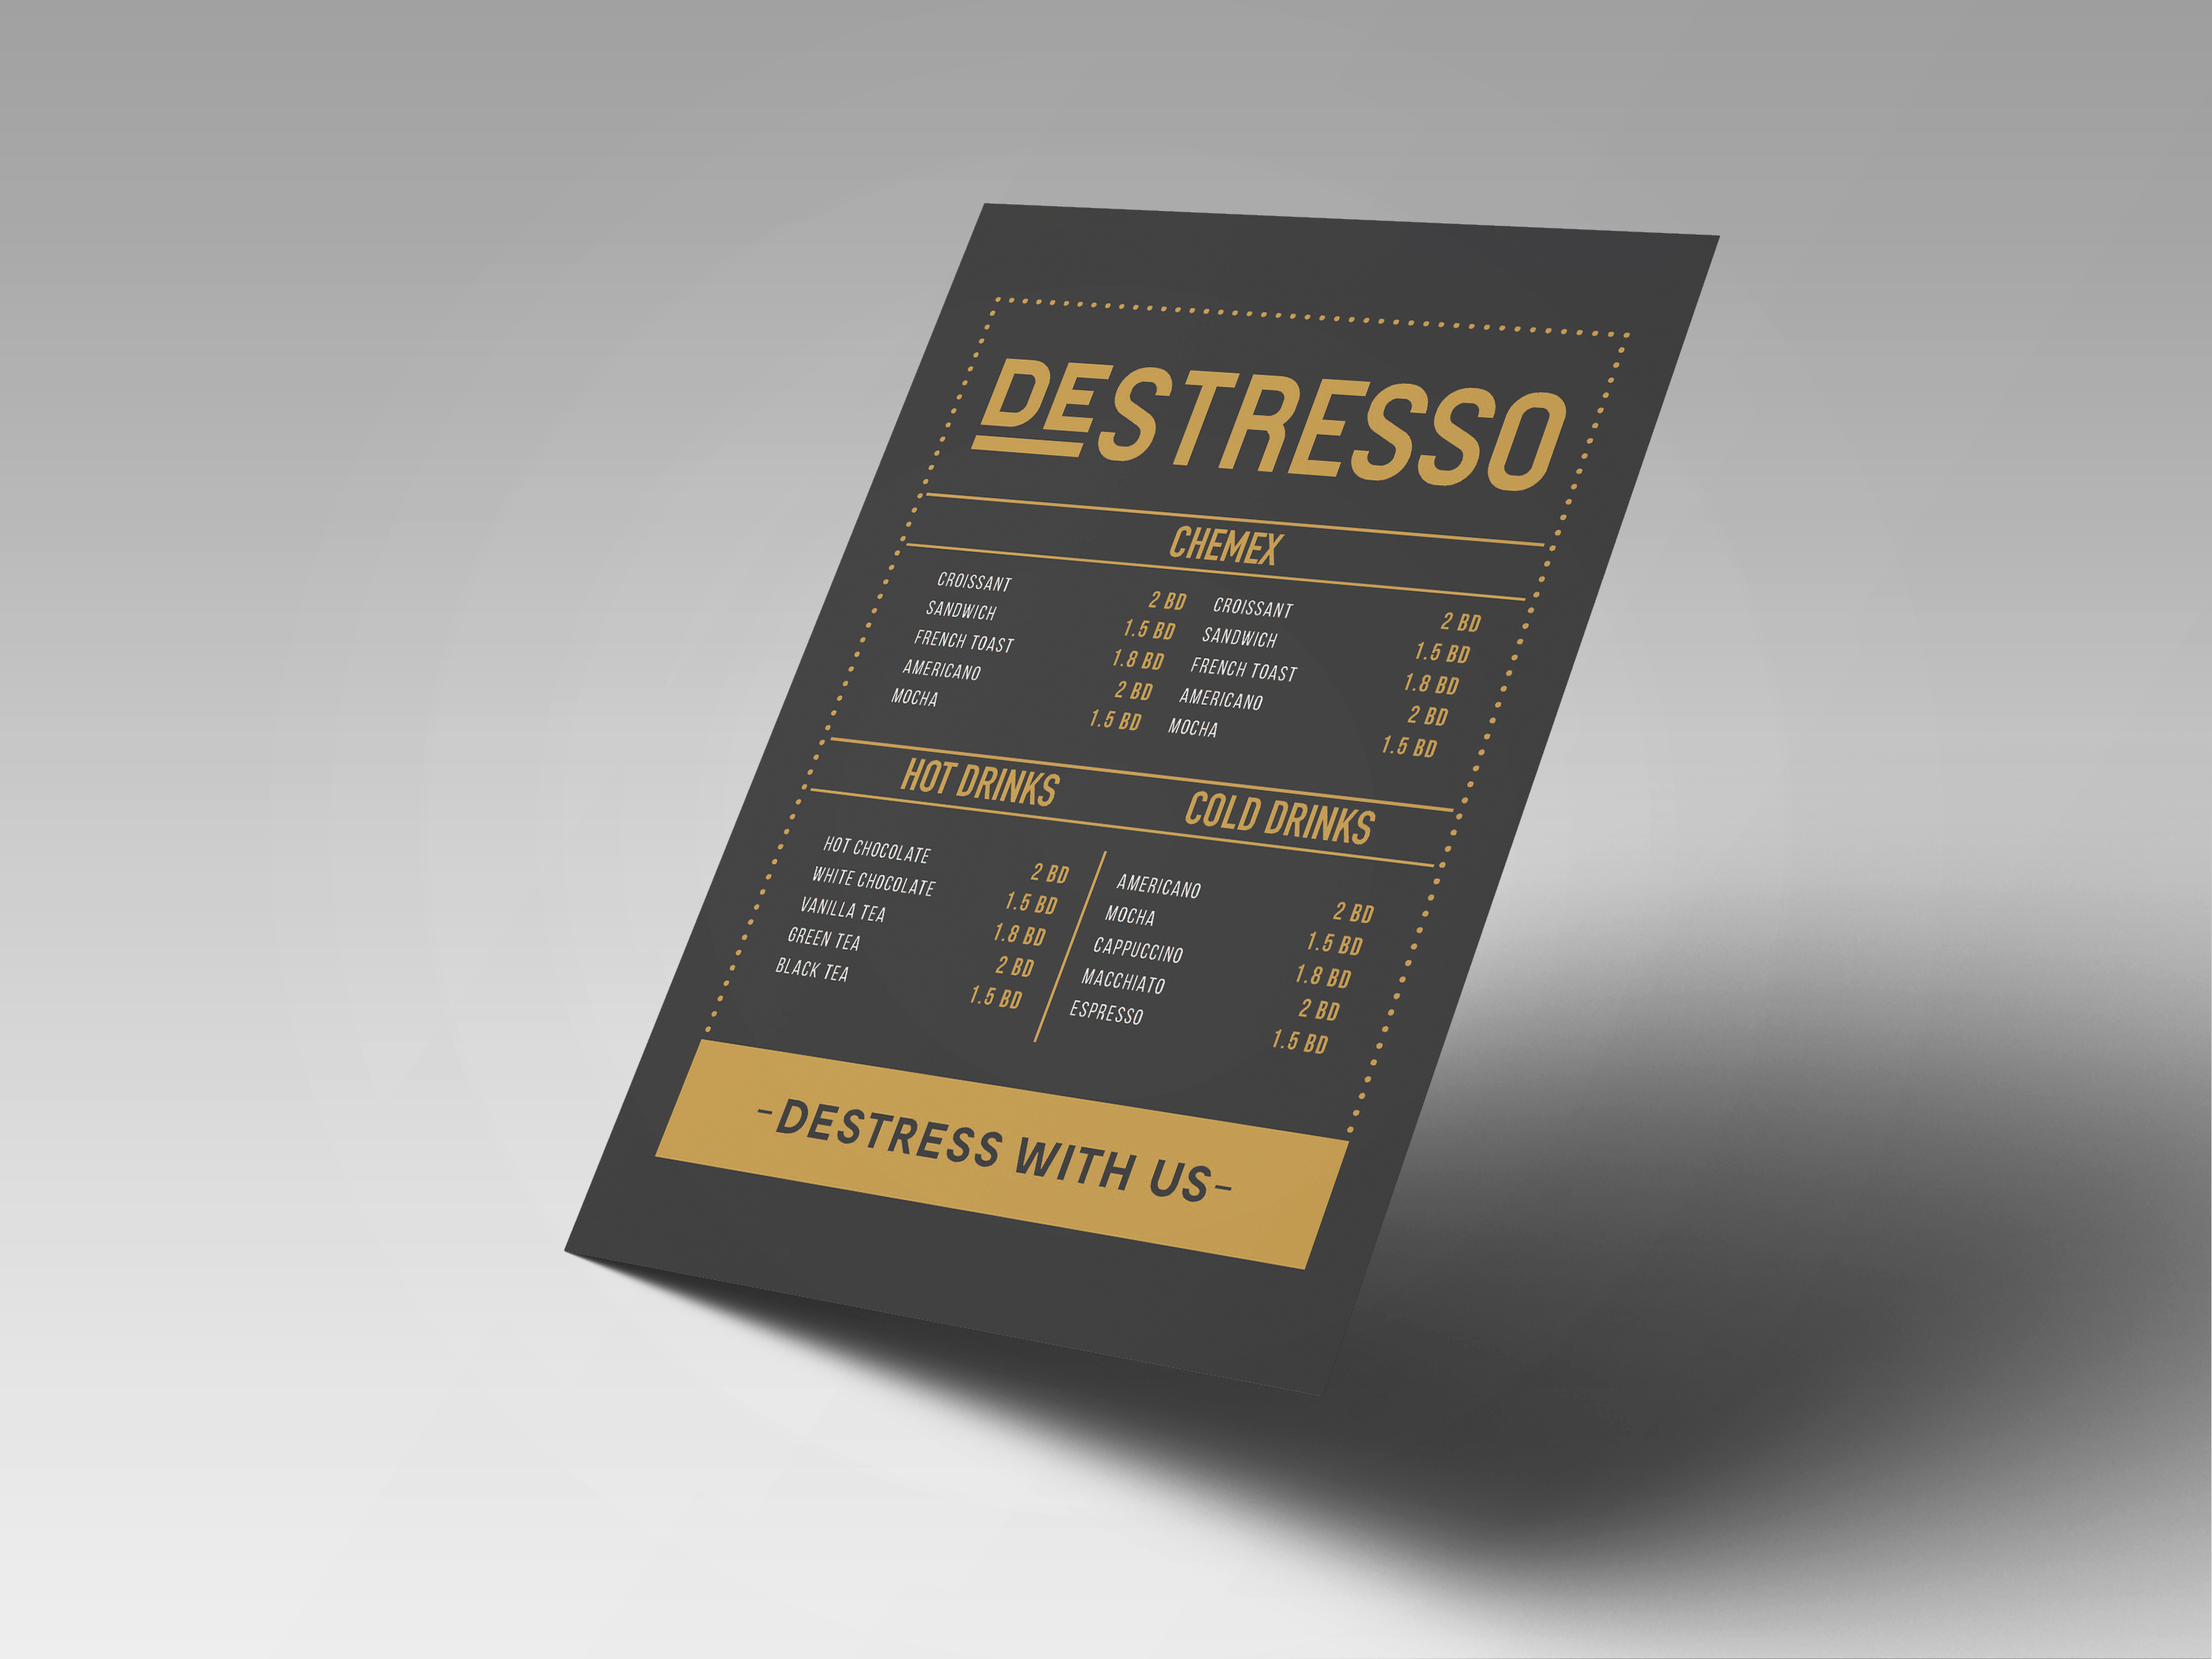 Destrsso cafe Menu design